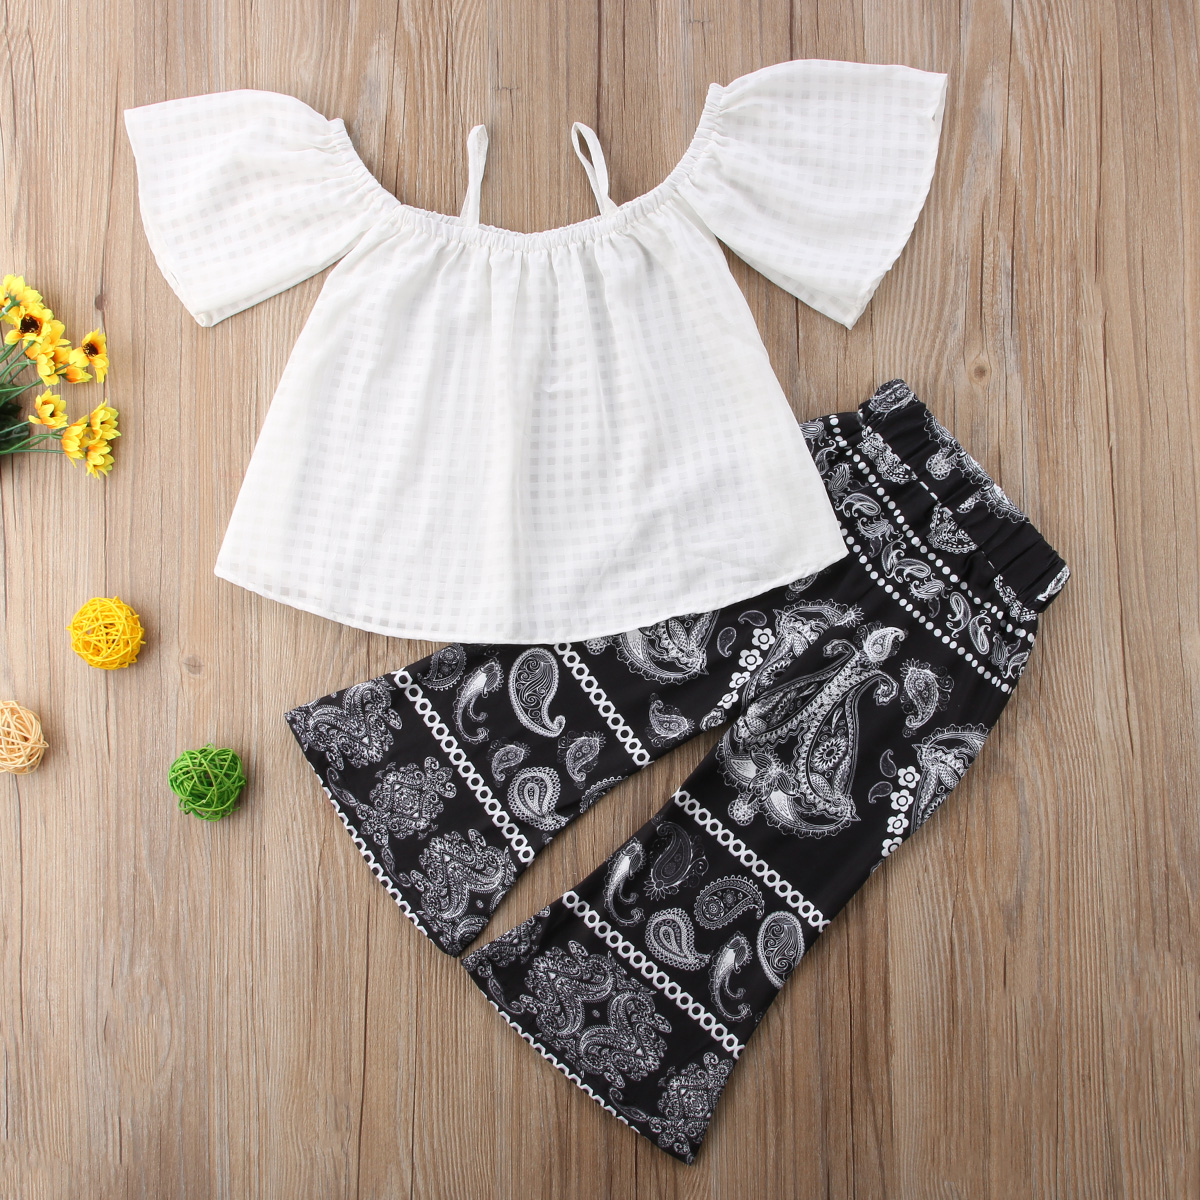 Kids Baby Girl White Strap Off Shoulder Tops Wide Leg Long Flared Bell Bottom Pants Outfits Summer Print Retro Clothes Set